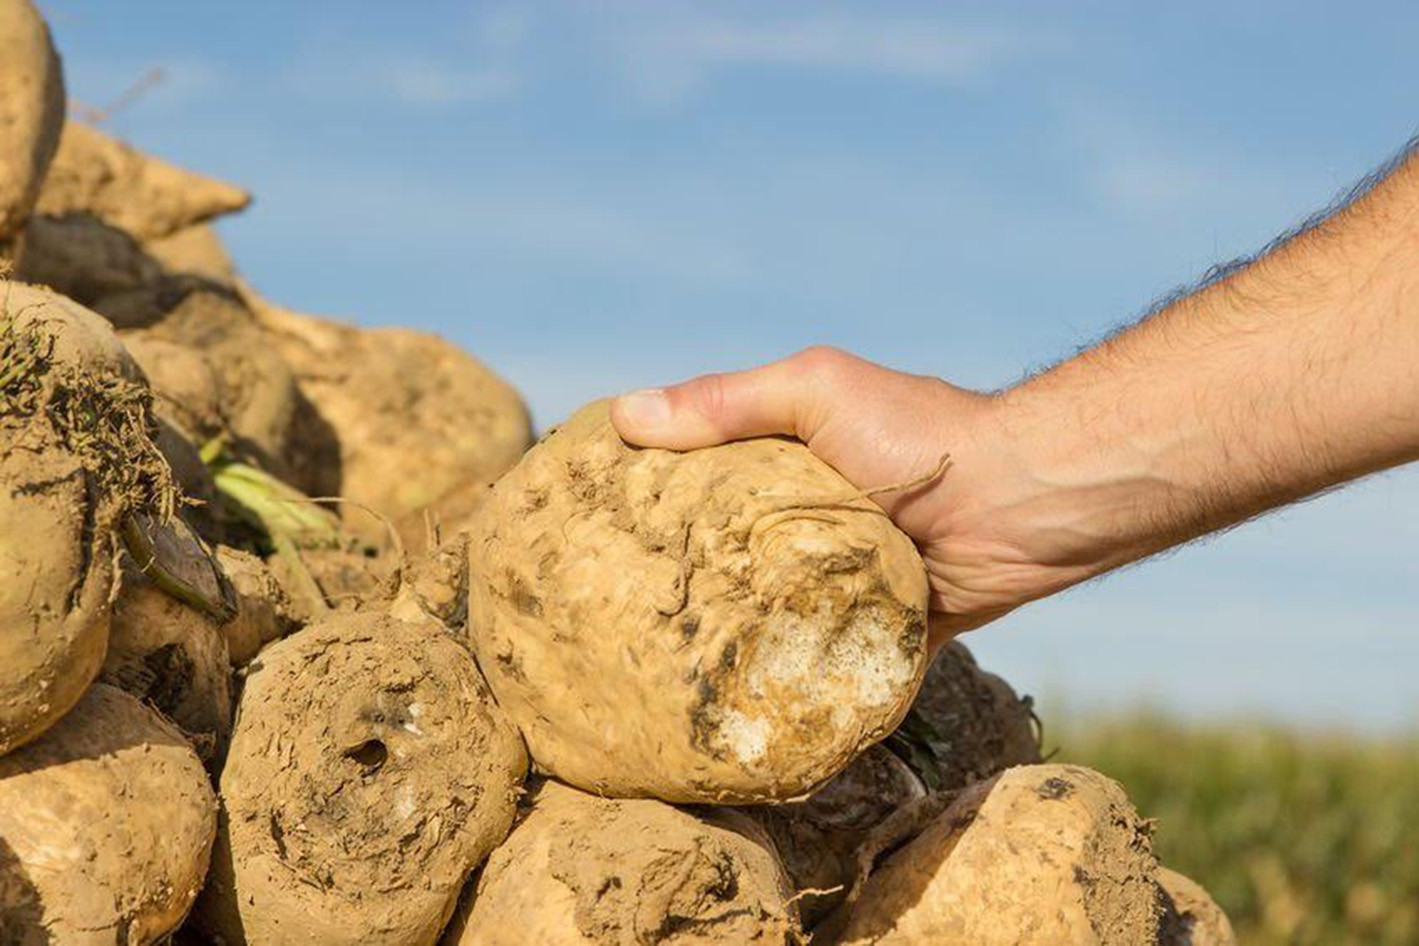 hand on a sugar beet in a pile of sugar beets